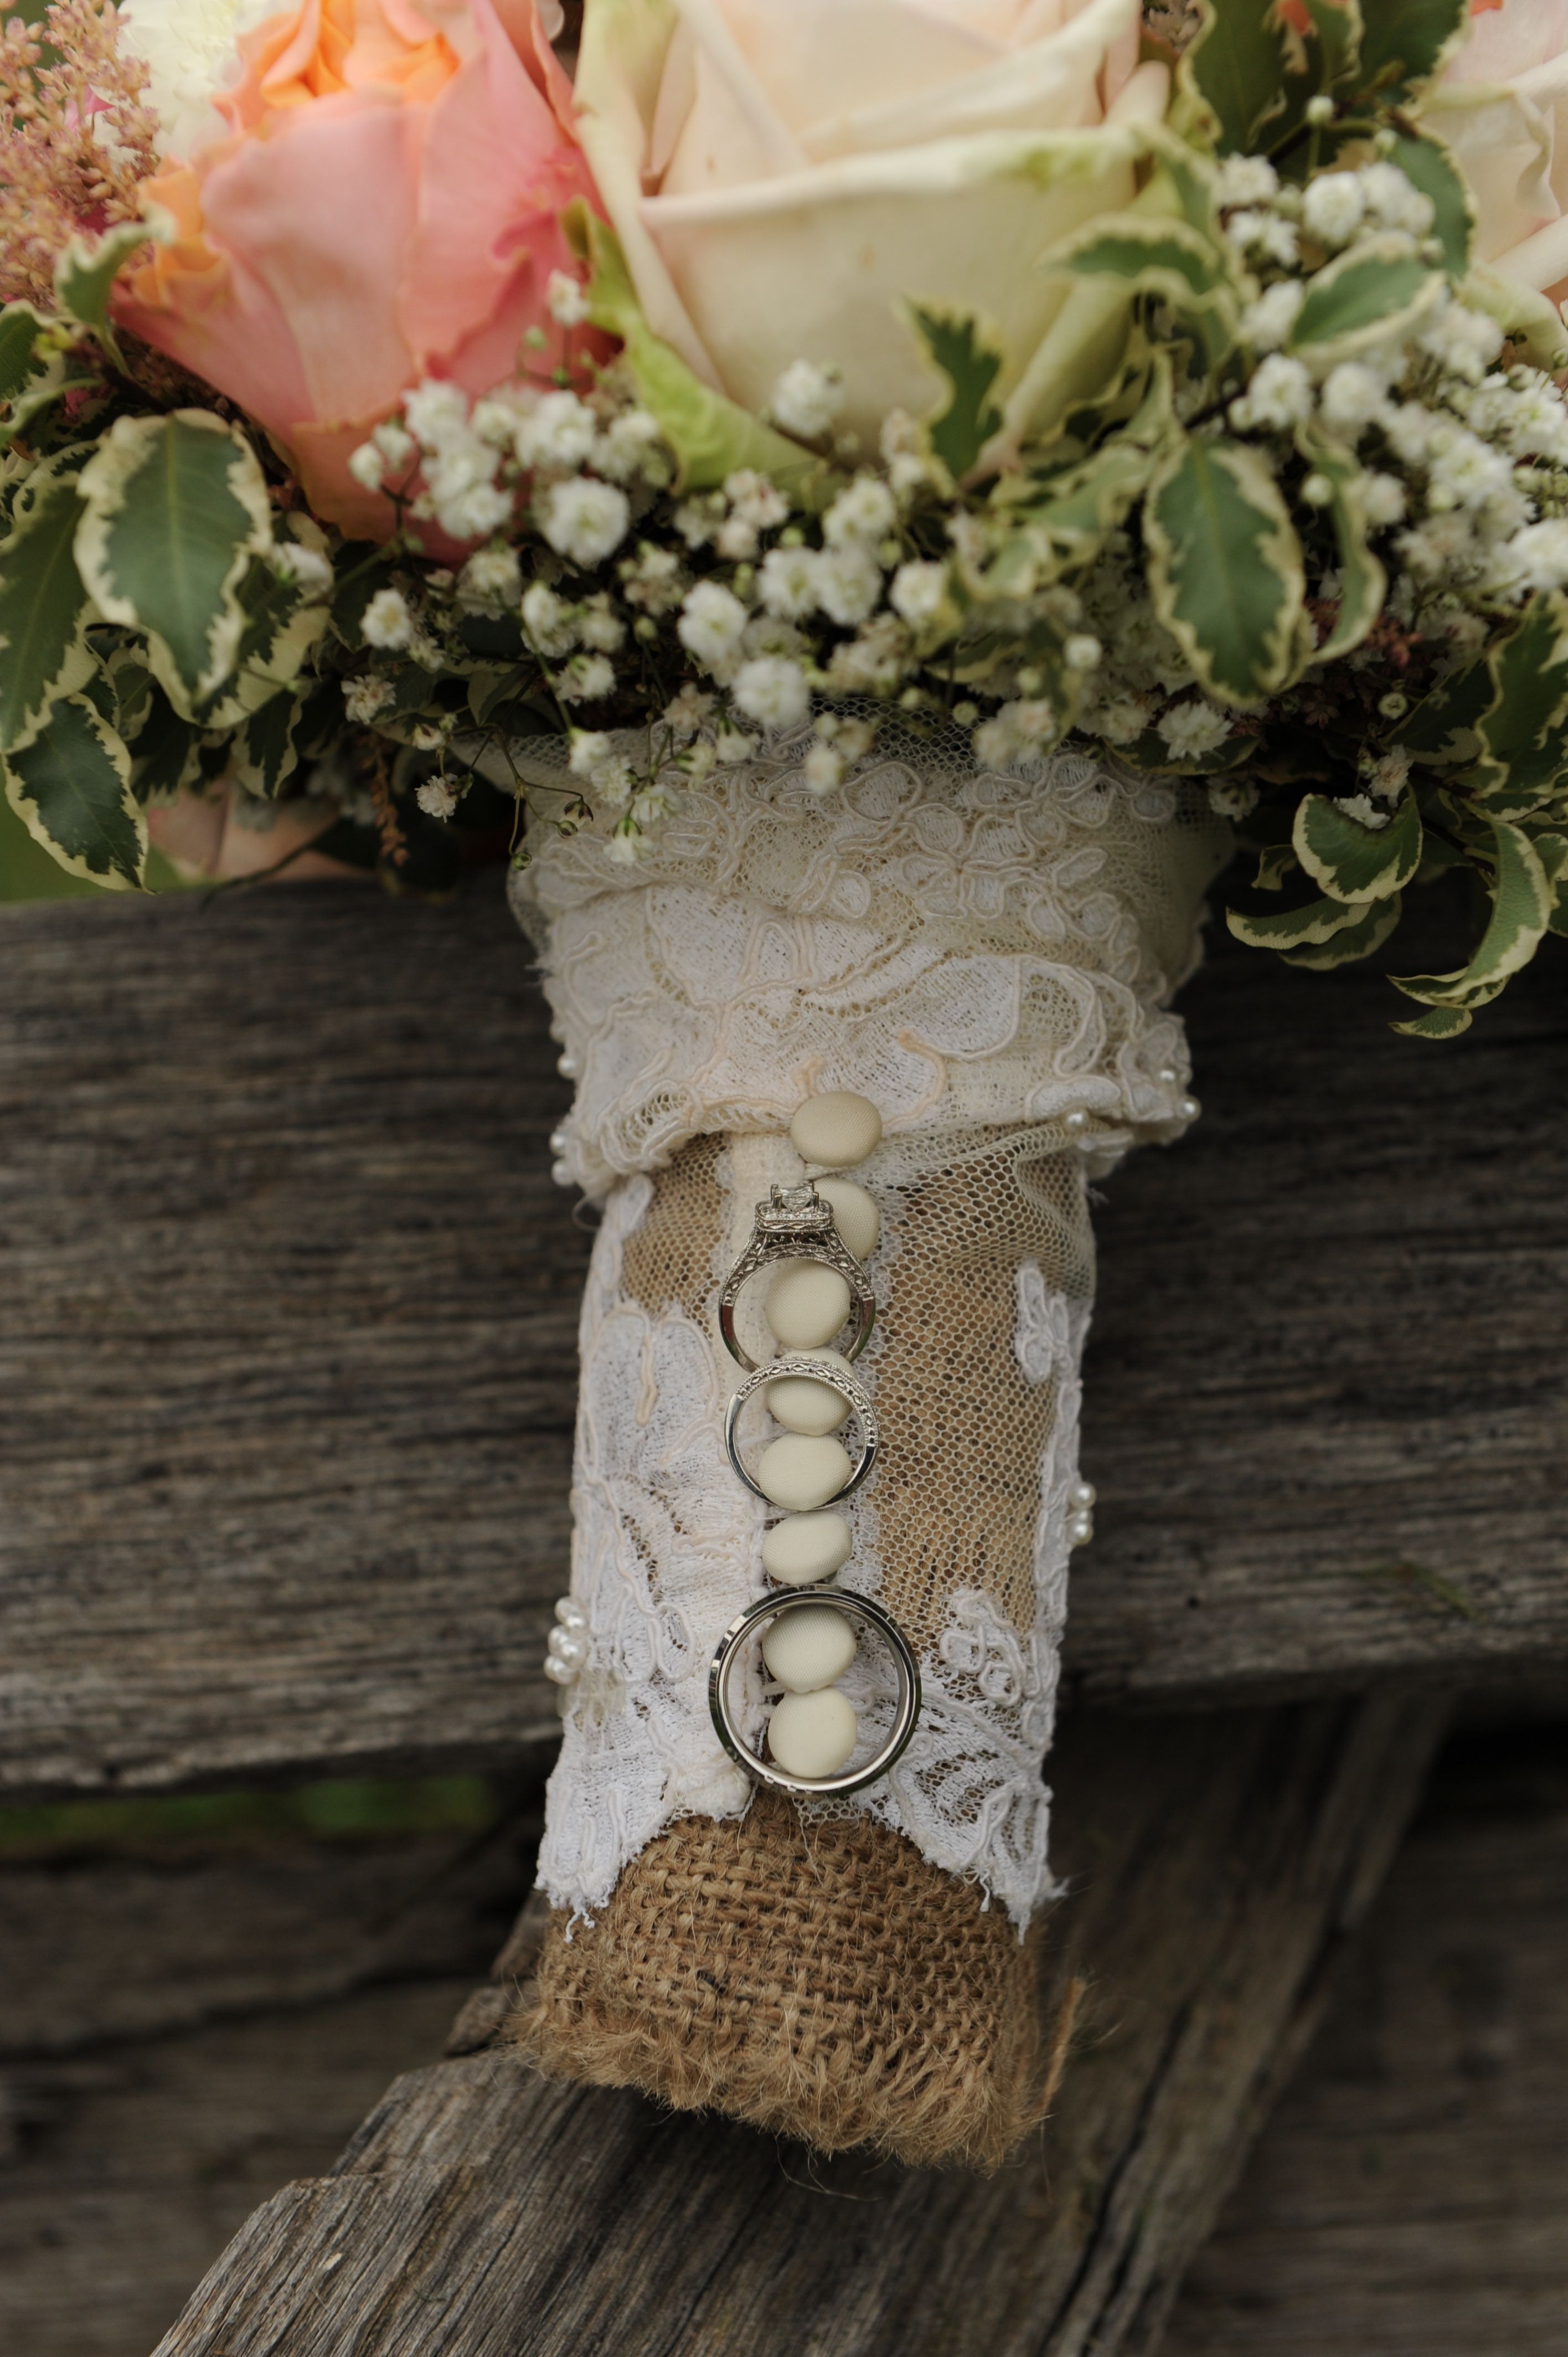 bridal bouquet with handle wrapped with sleeve from mother's